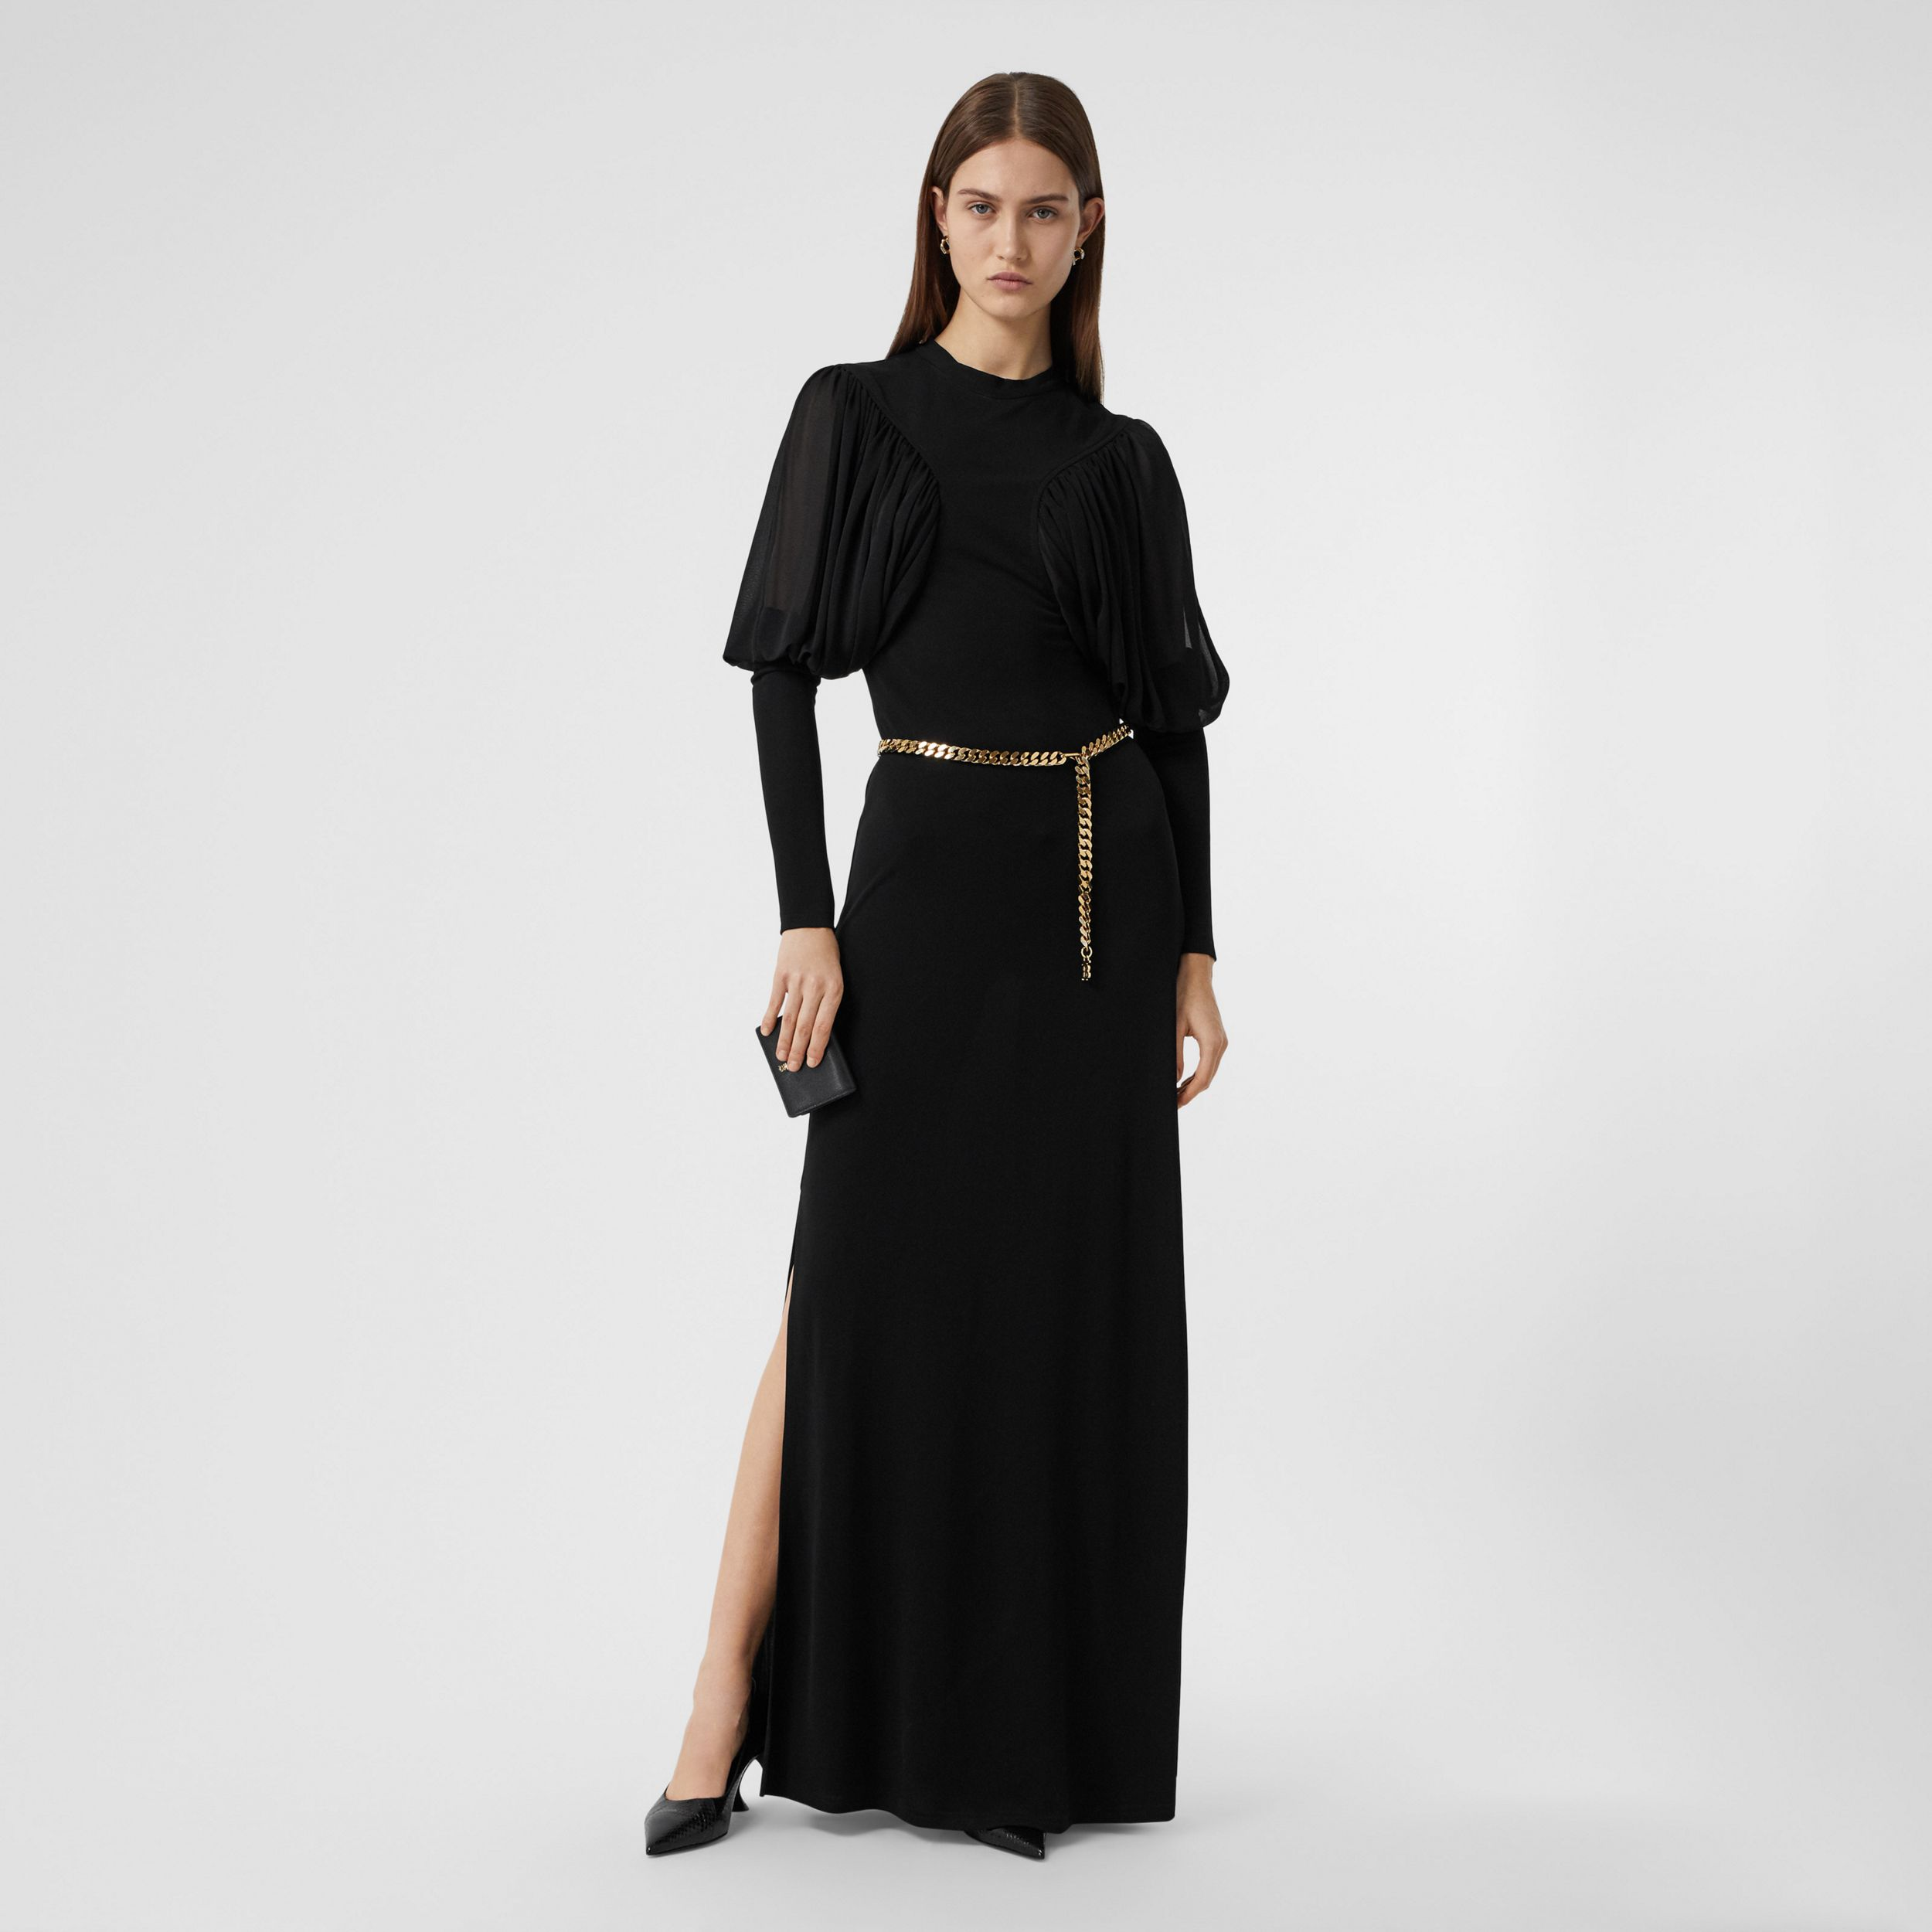 Puff-sleeve Jersey Gown in Black - Women | Burberry Hong Kong S.A.R. - 1